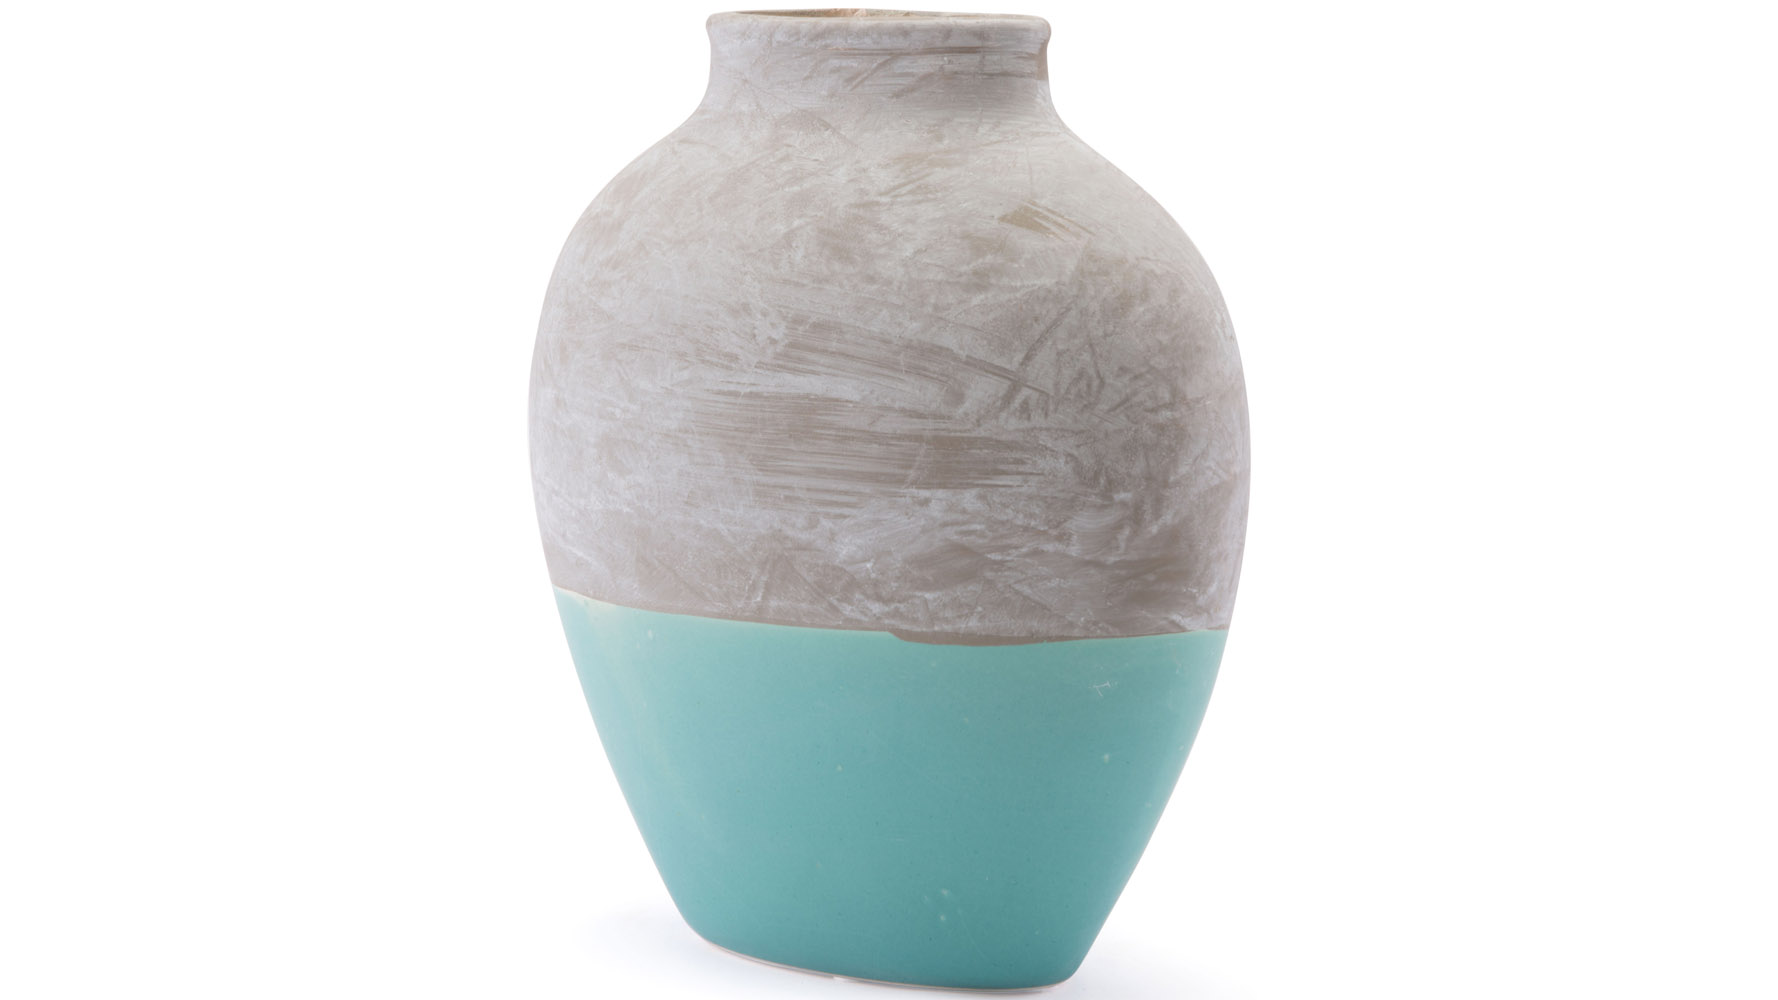 Azte Large Vase Gray Amp Teal Zuri Furniture